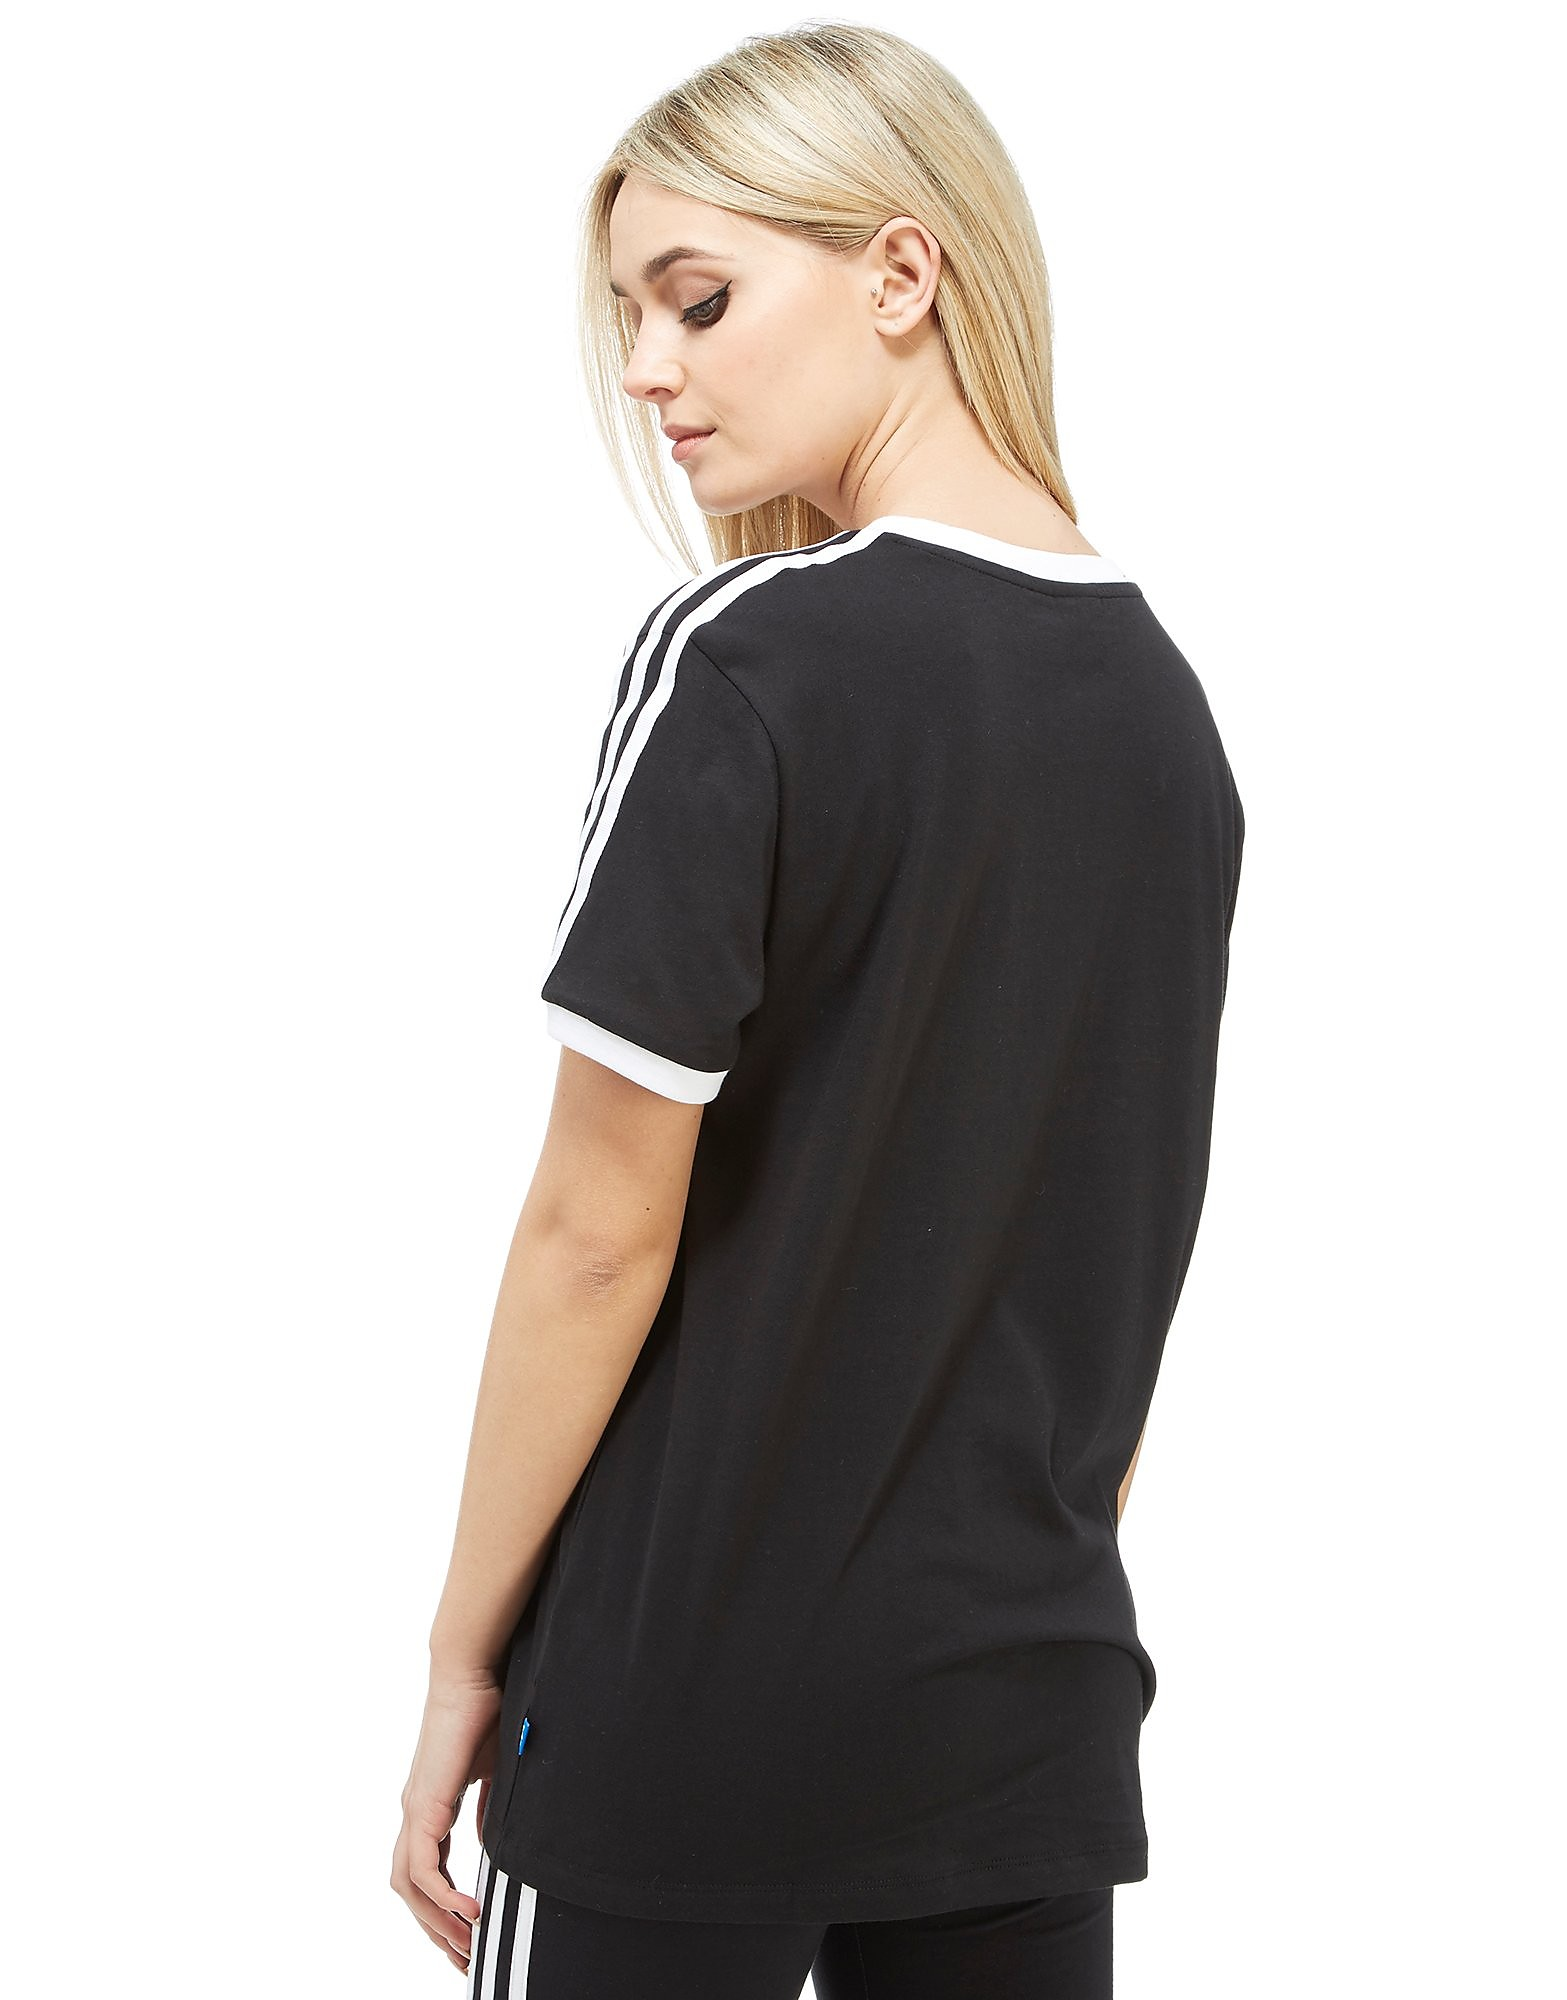 adidas Originals California T-Shirt Women's